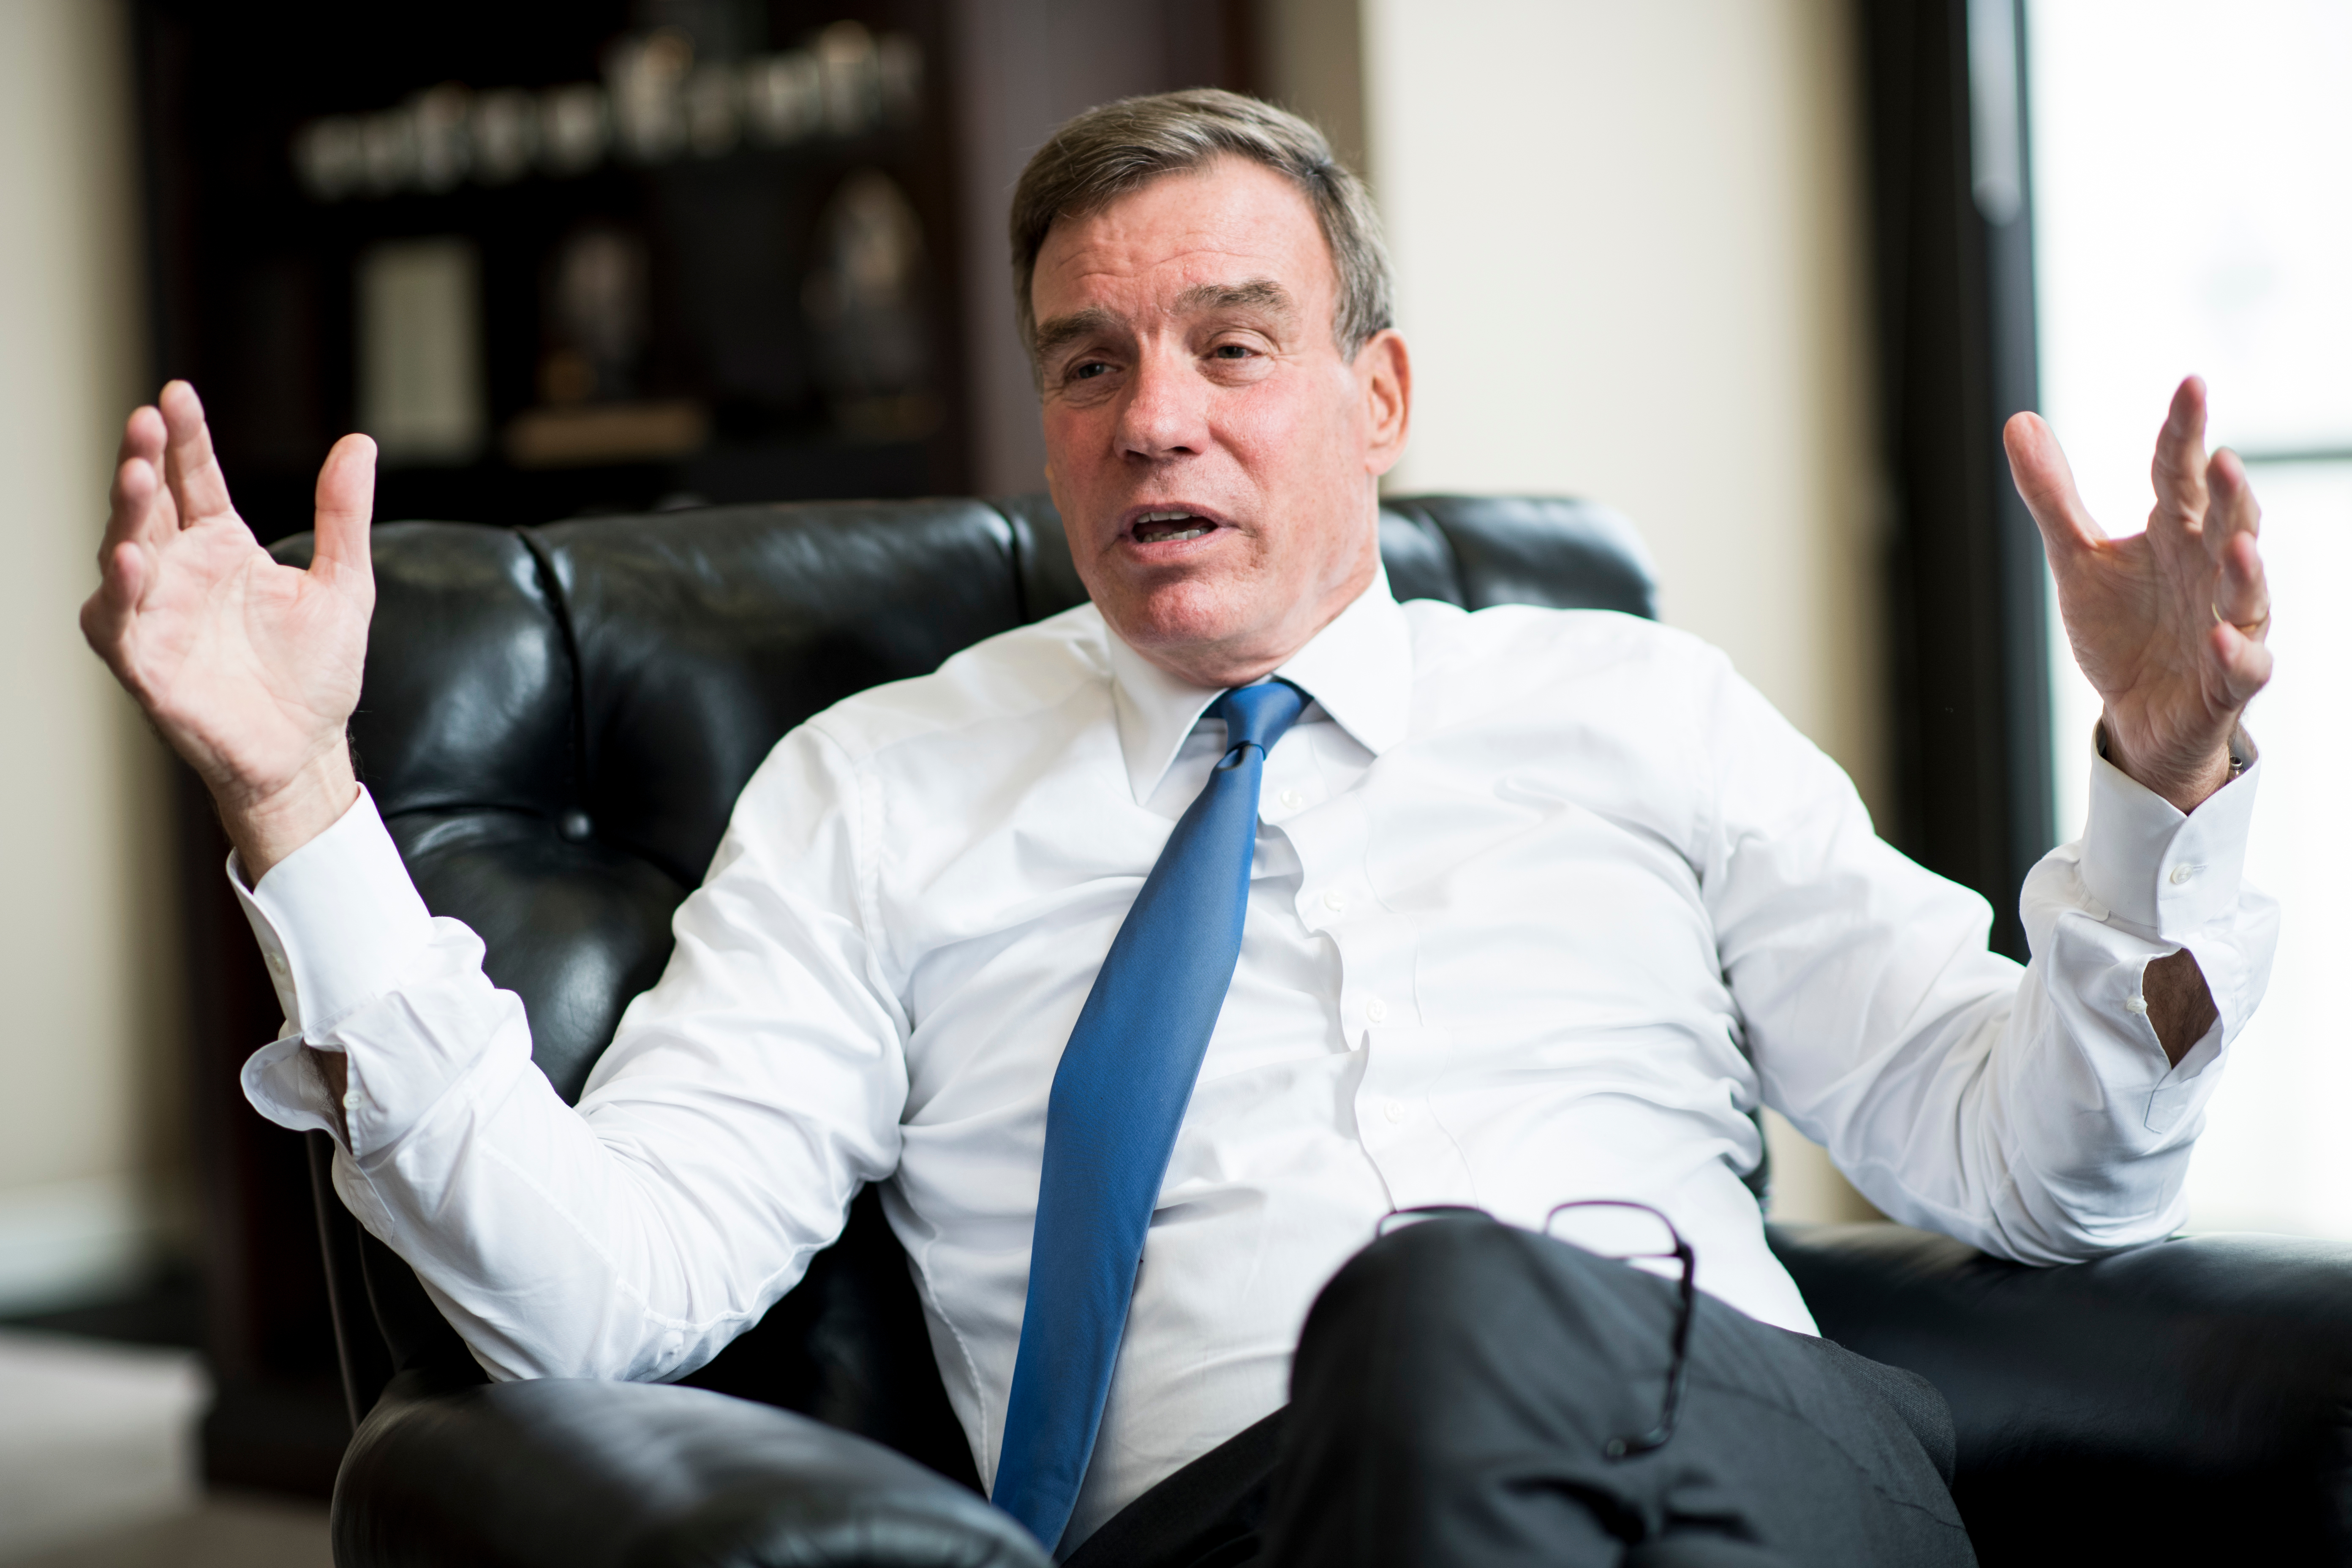 UNITED STATES - SEPTEMBER 25: Sen. Mark Warner, D-Va., speaks with Roll Call in his office in the Hart Senate Office Building on Tuesday, Sept. 25, 2018. (Photo By Bill Clark/CQ Roll Call)